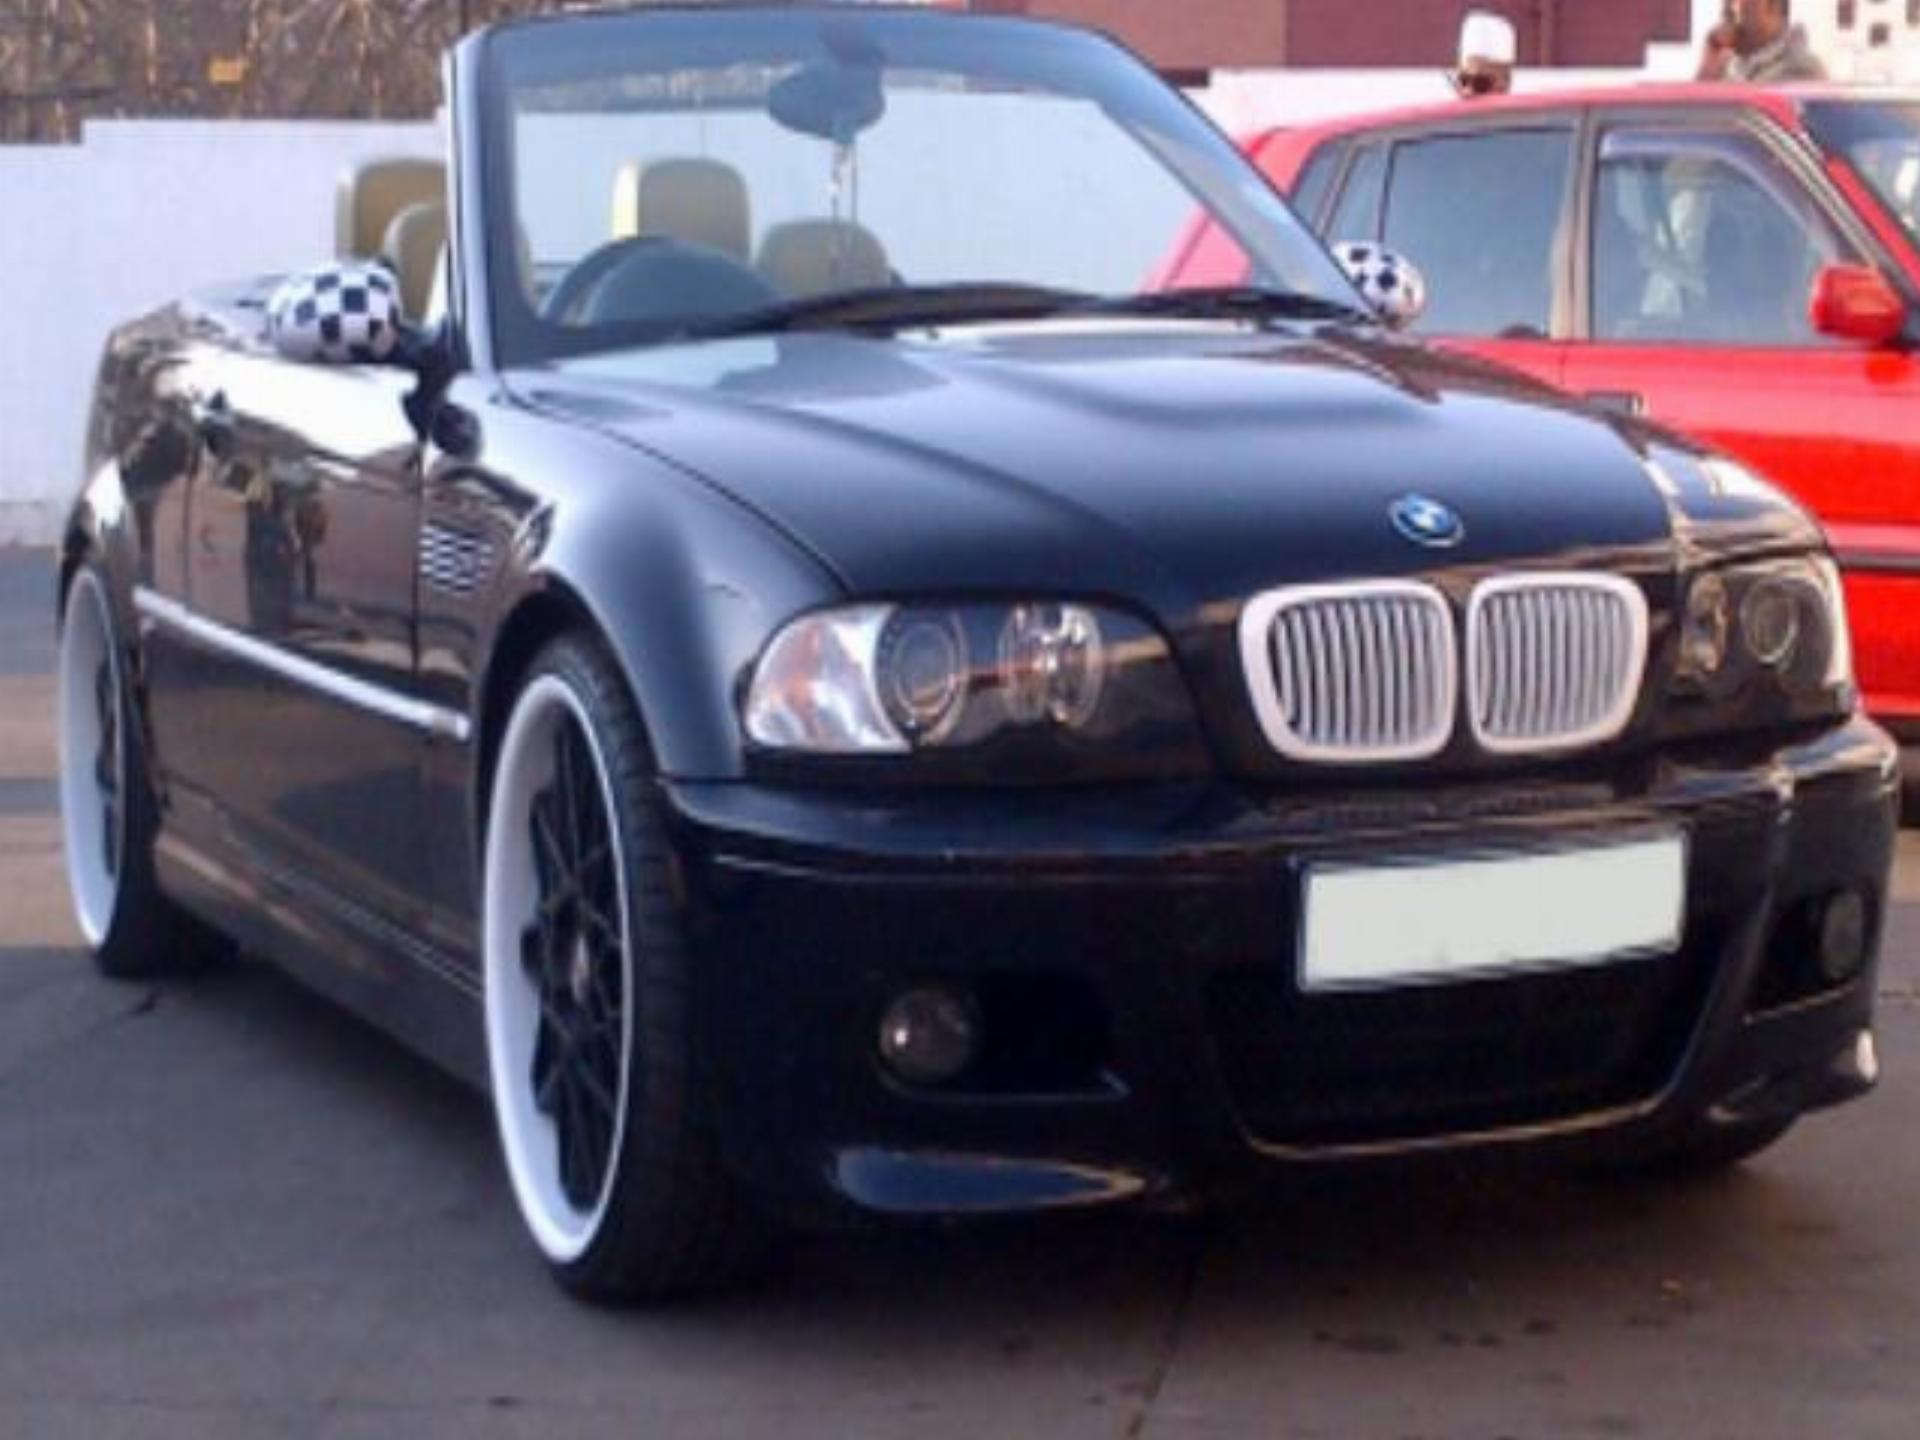 Used BMW M3 E46 SMG II Convertible 2004 on auction - PV1001728